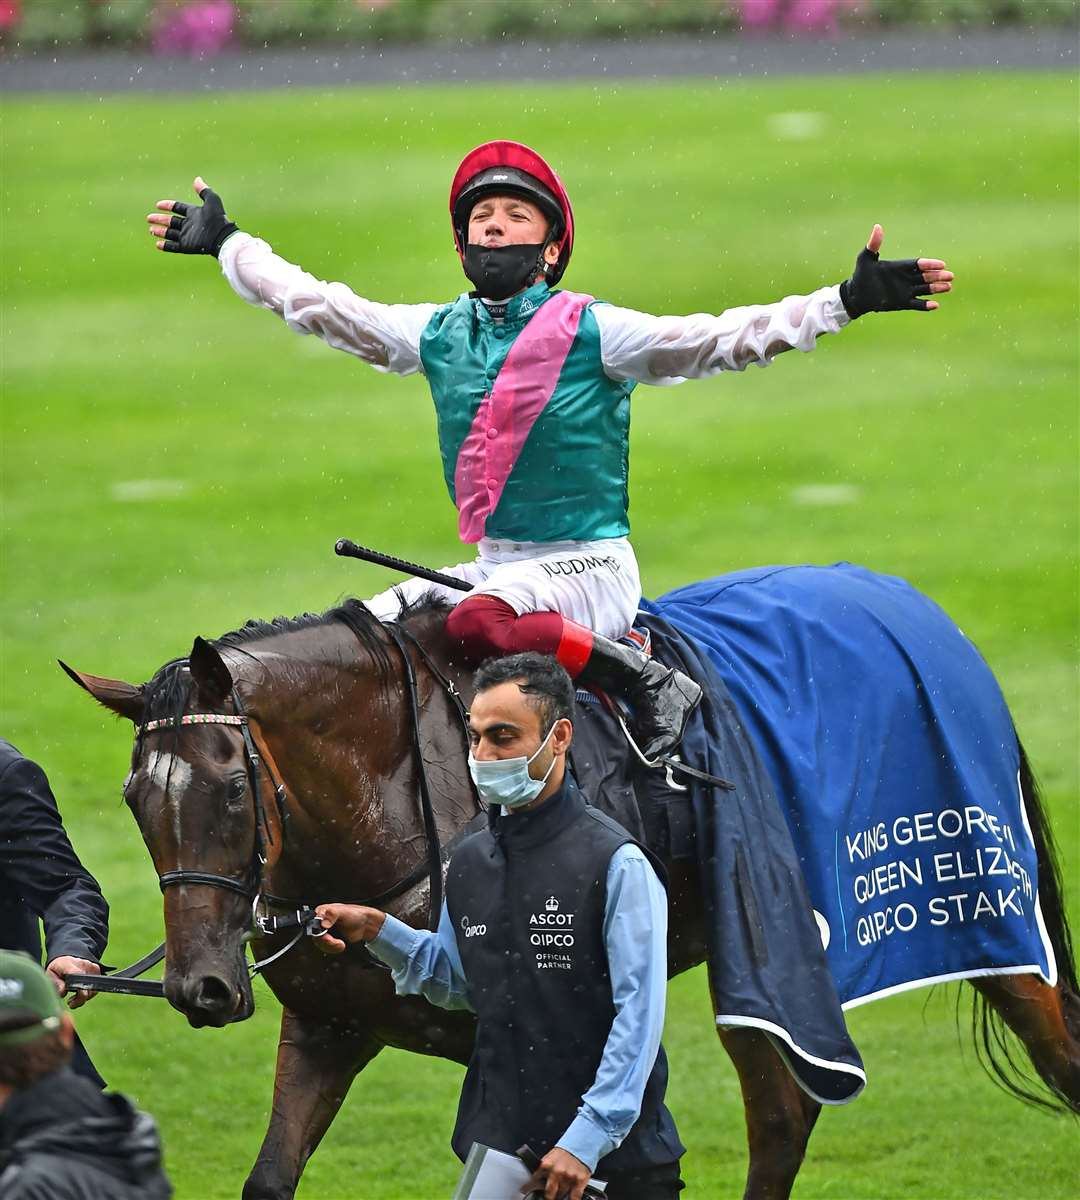 Frankie Dettori, celebrates after winning The King George Vl and Queen Elizabeth Qipco Stakes on Enable. Picture: Bill Selwyn